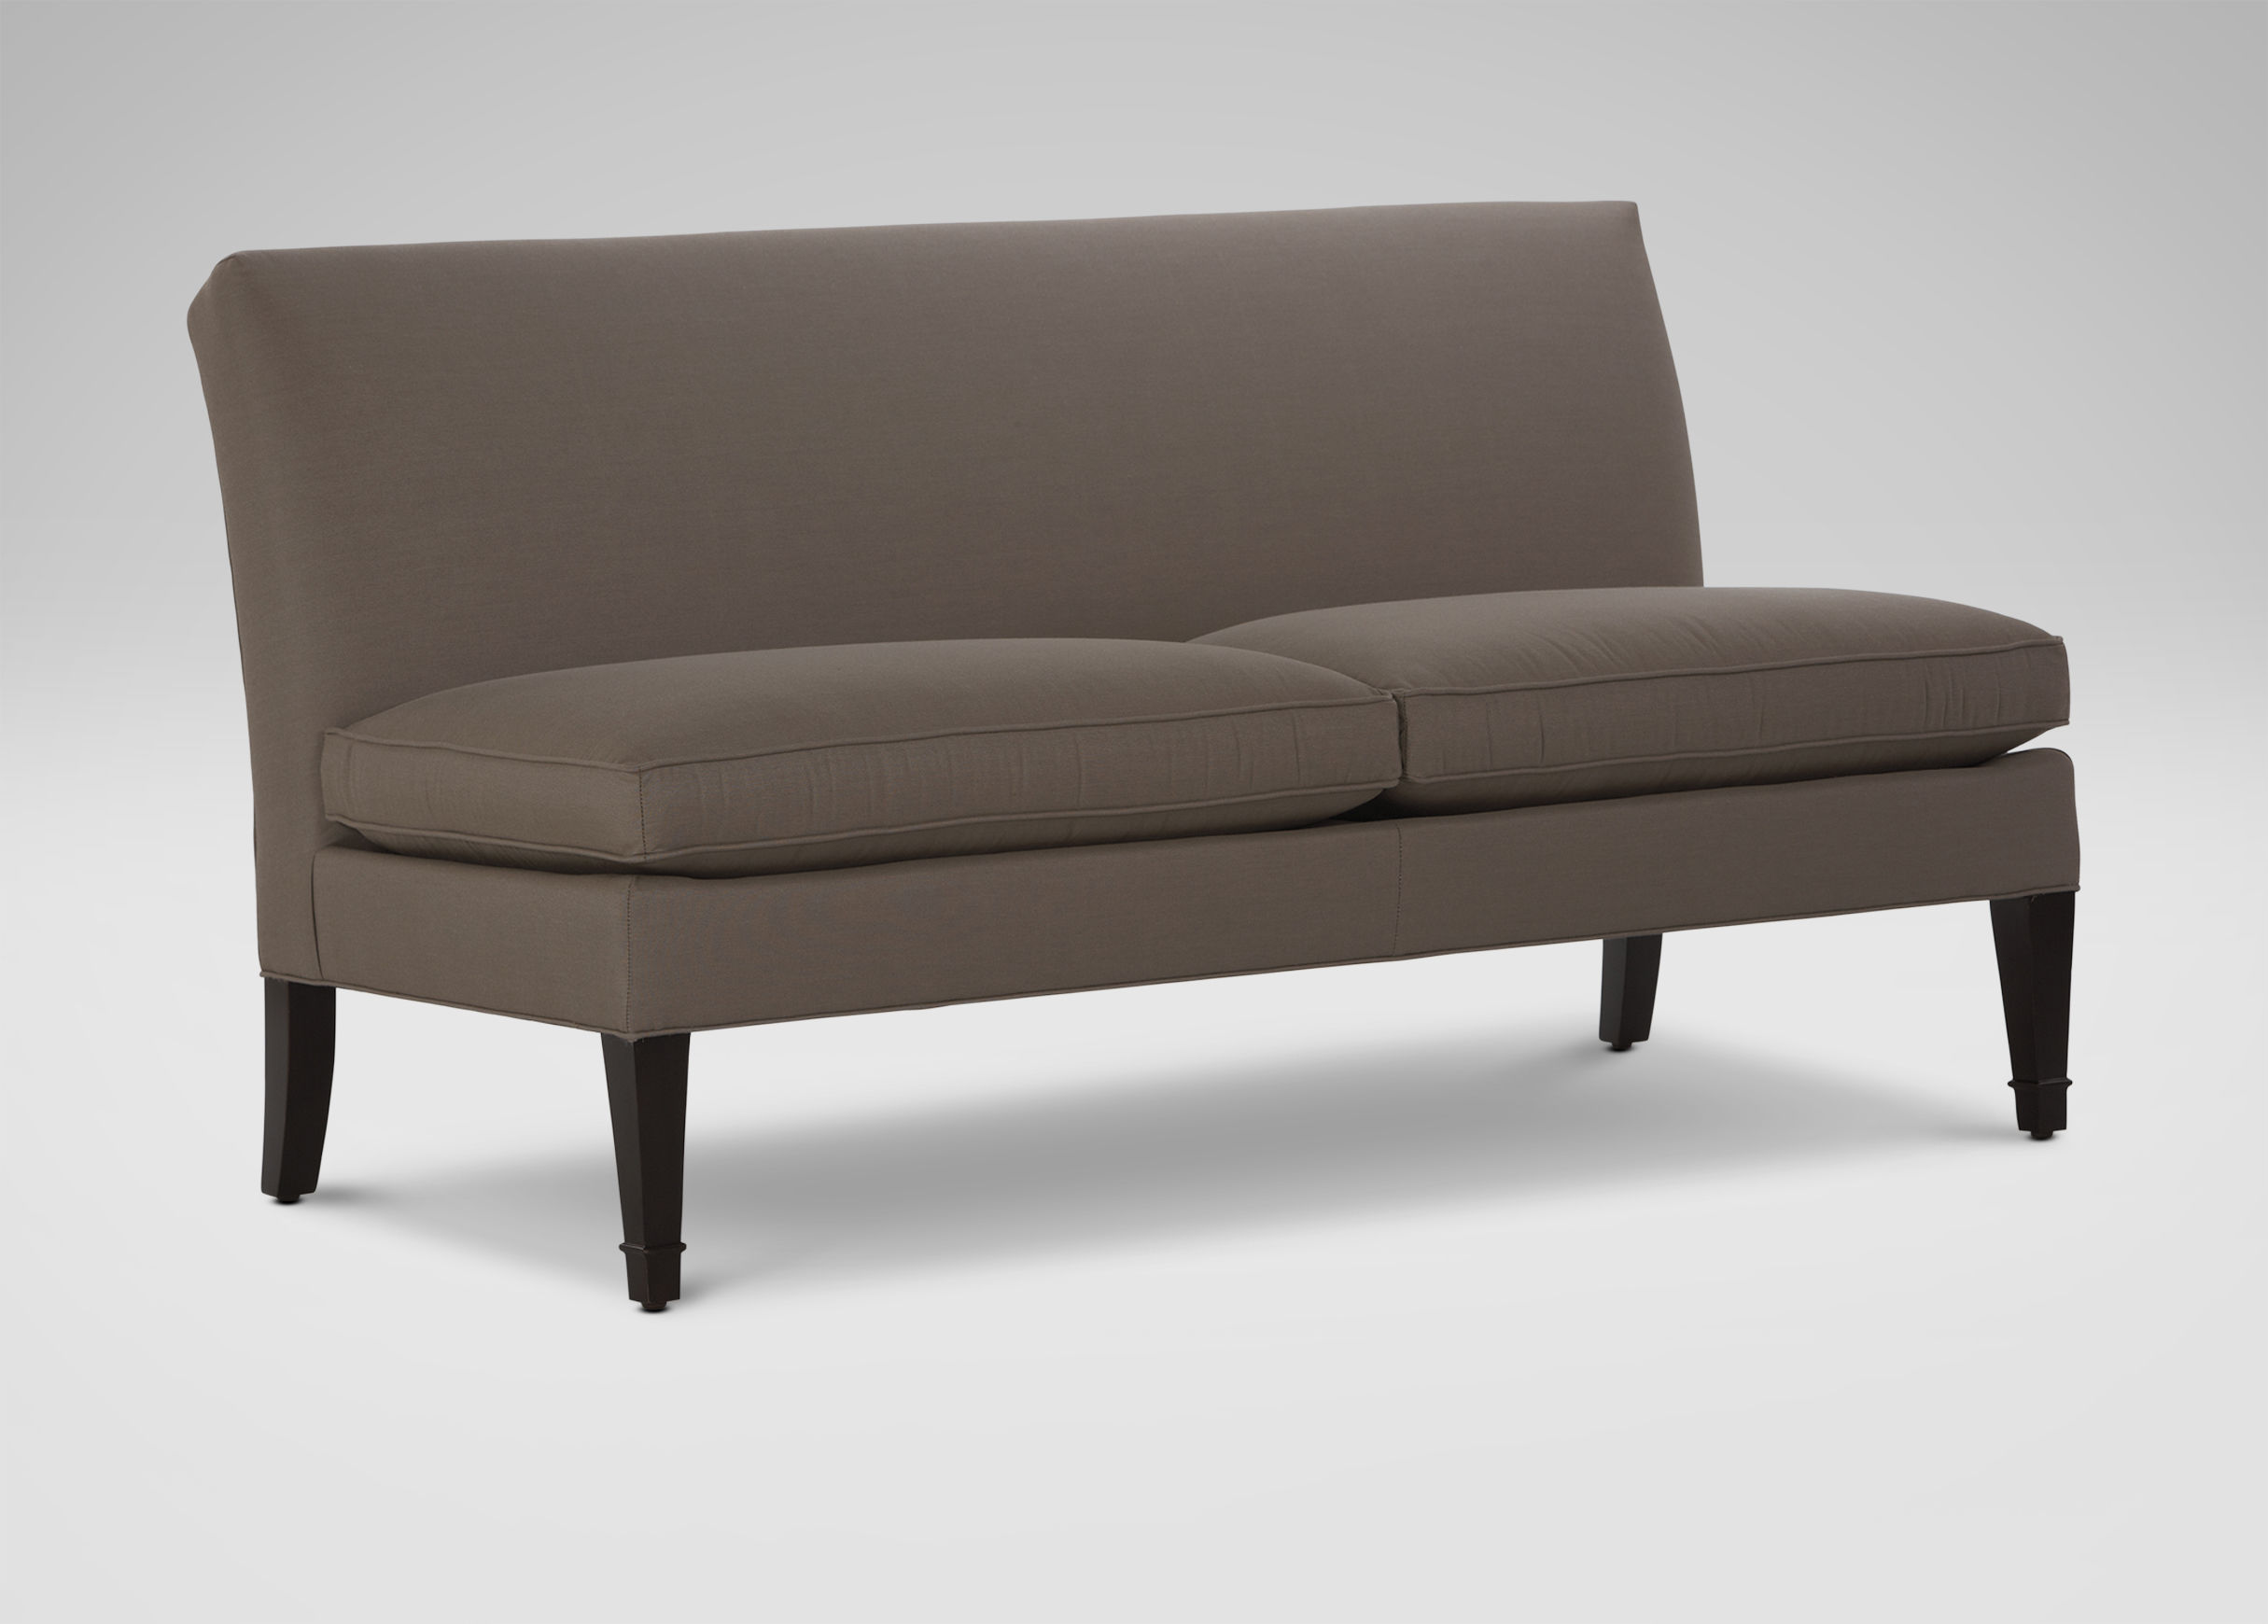 mesmerizing armless settee gray color sofaa